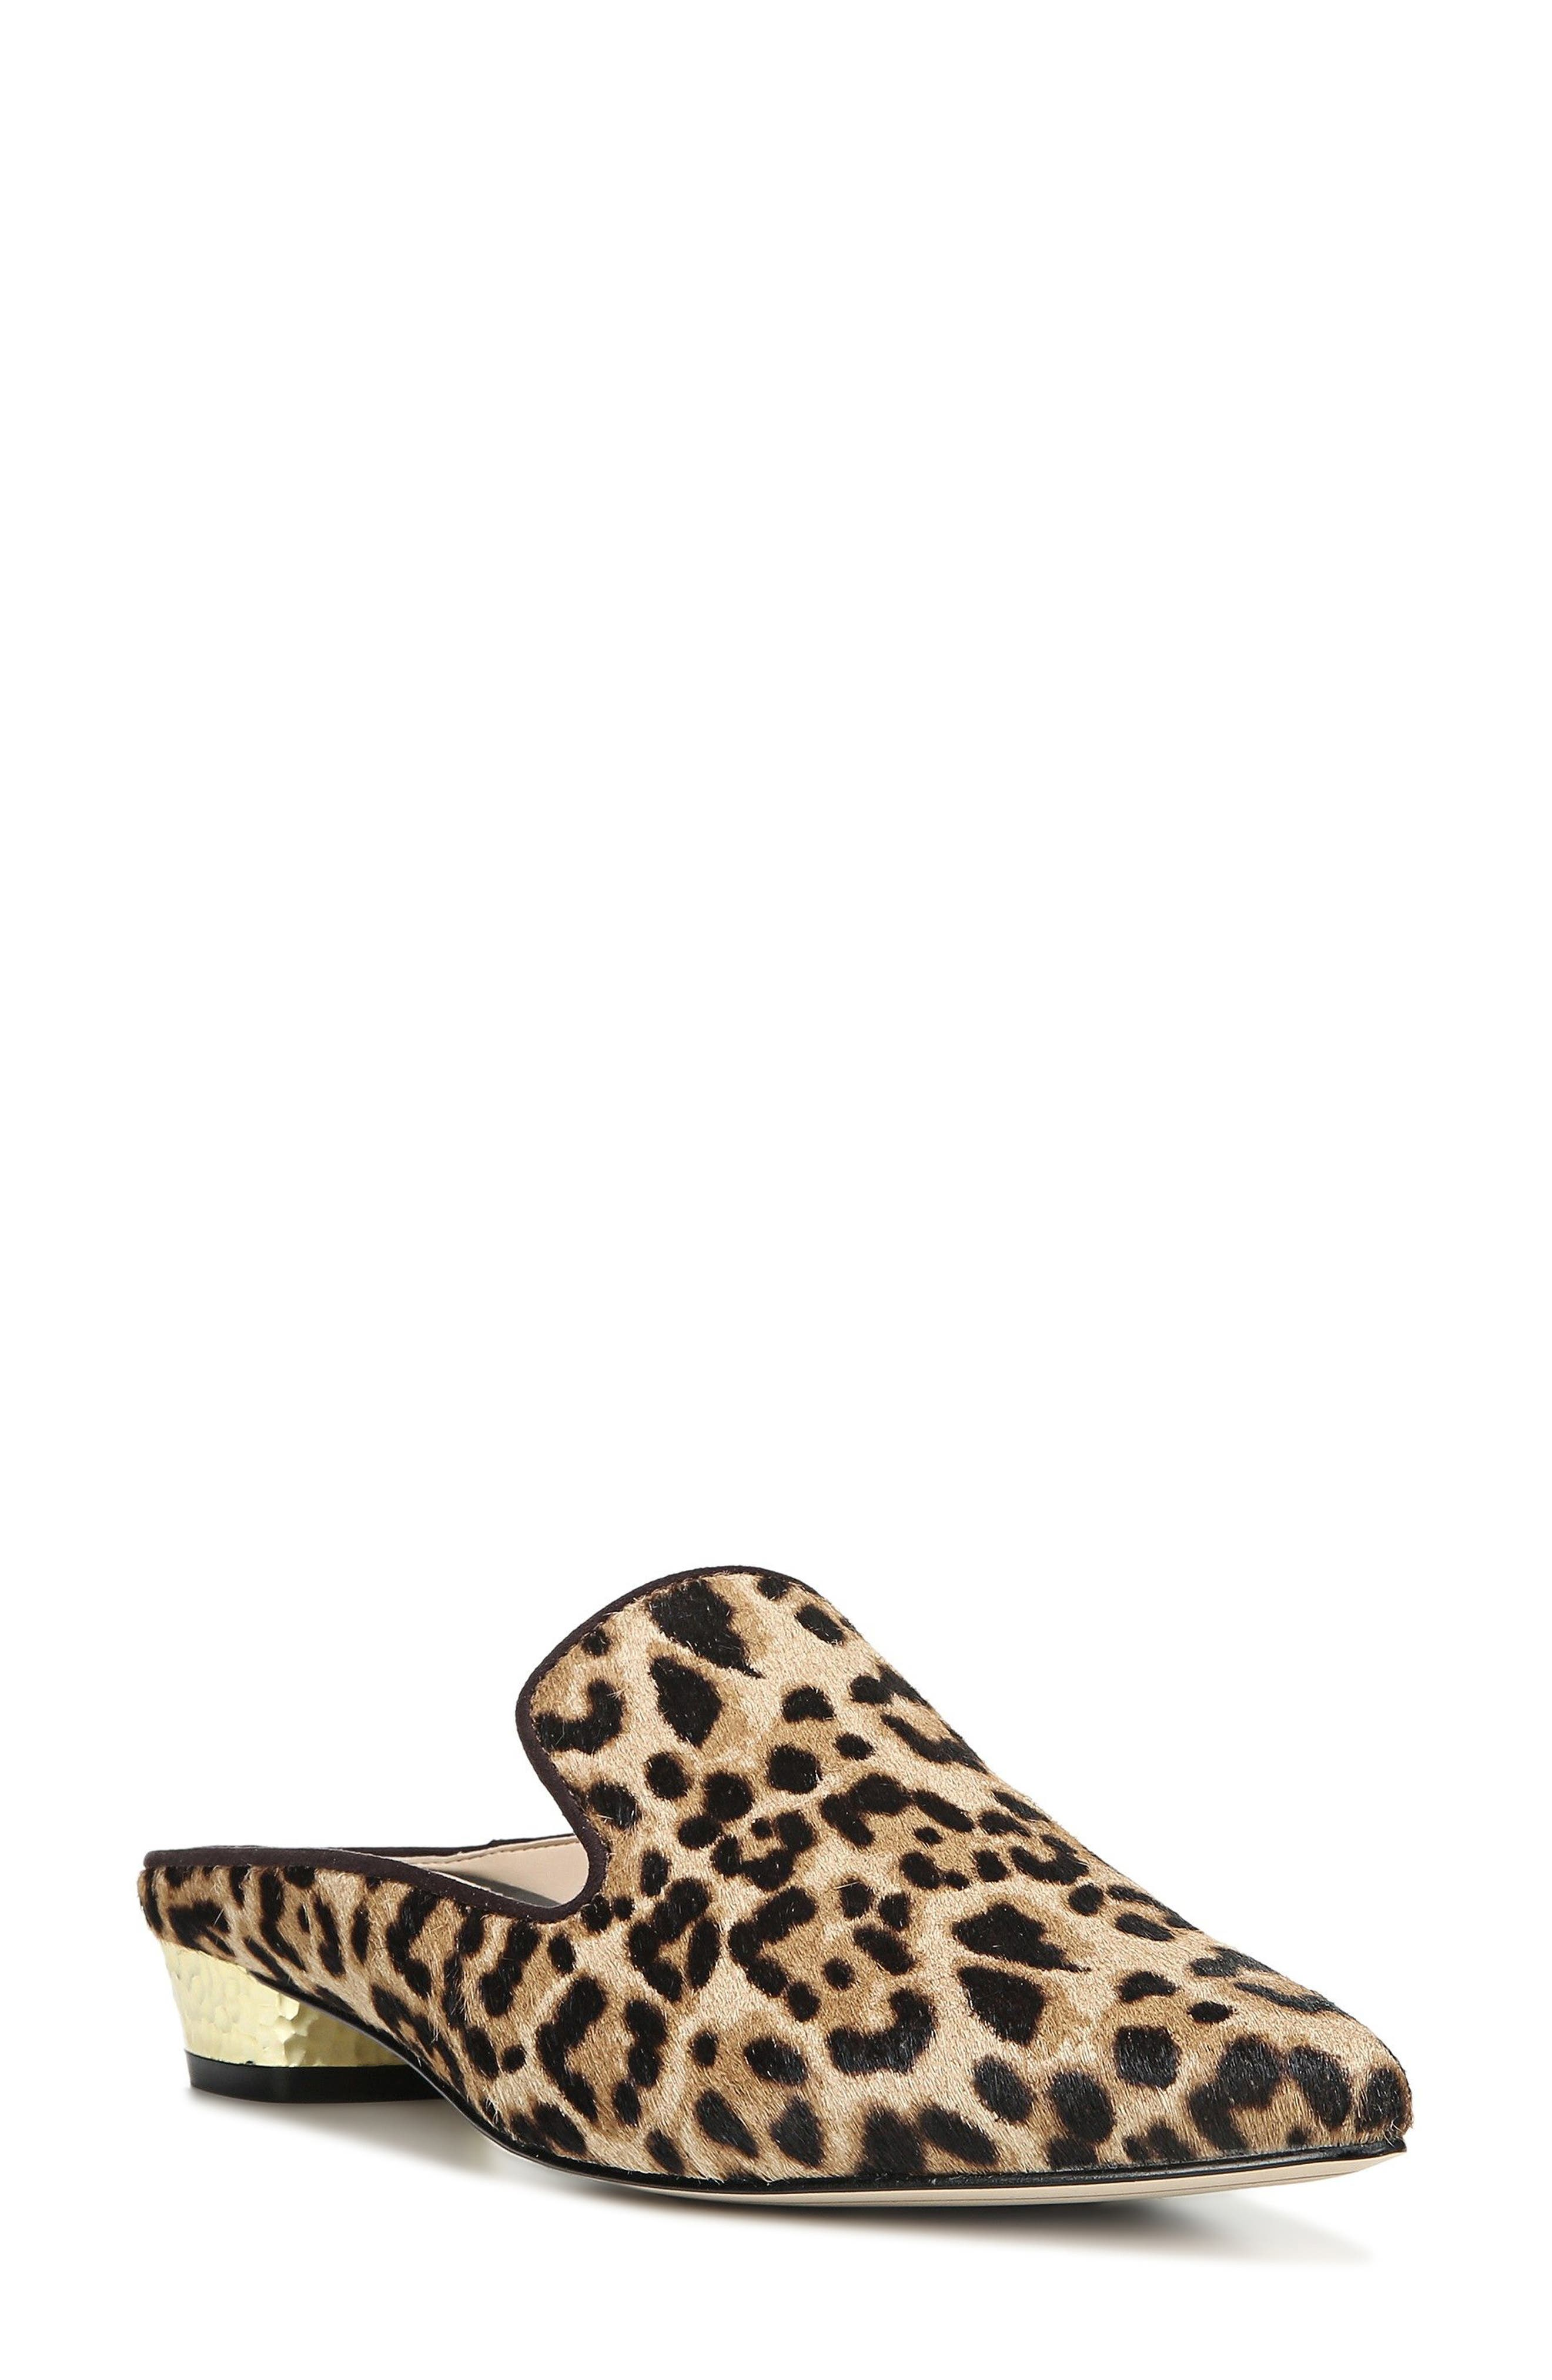 Alternate Image 1 Selected - Sam Edelman Augustine Patterned Loafer Mule (Women)